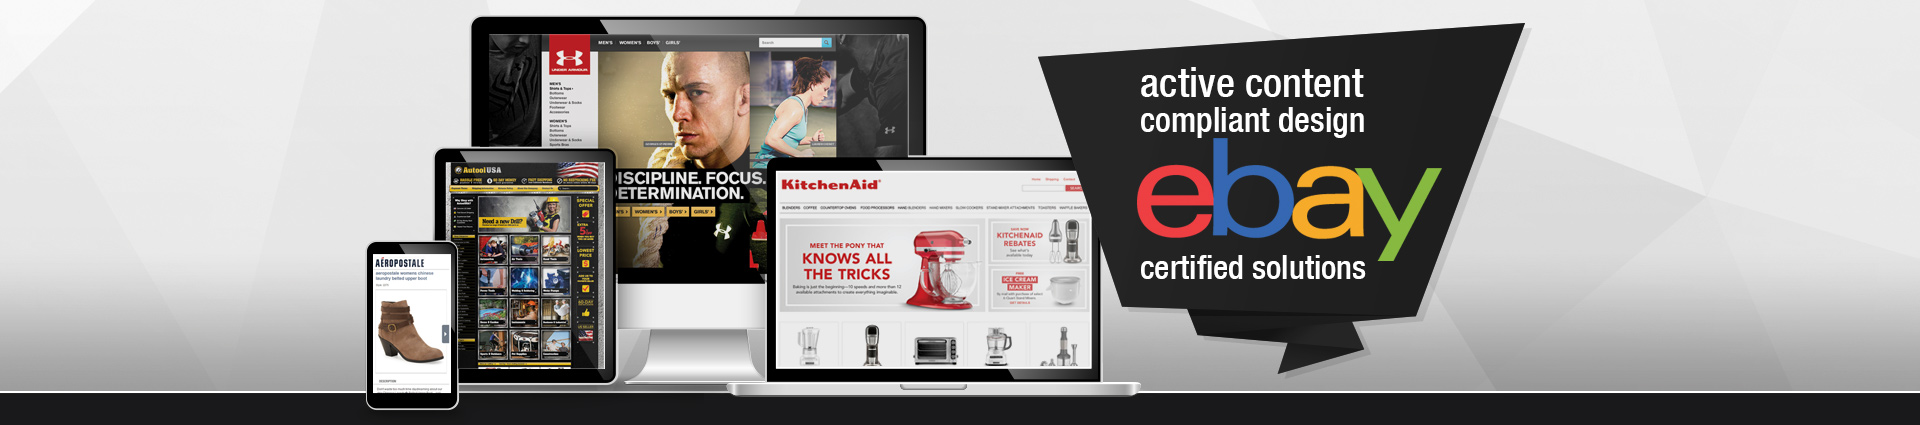 Active Content compliant design, eBay certified solutions